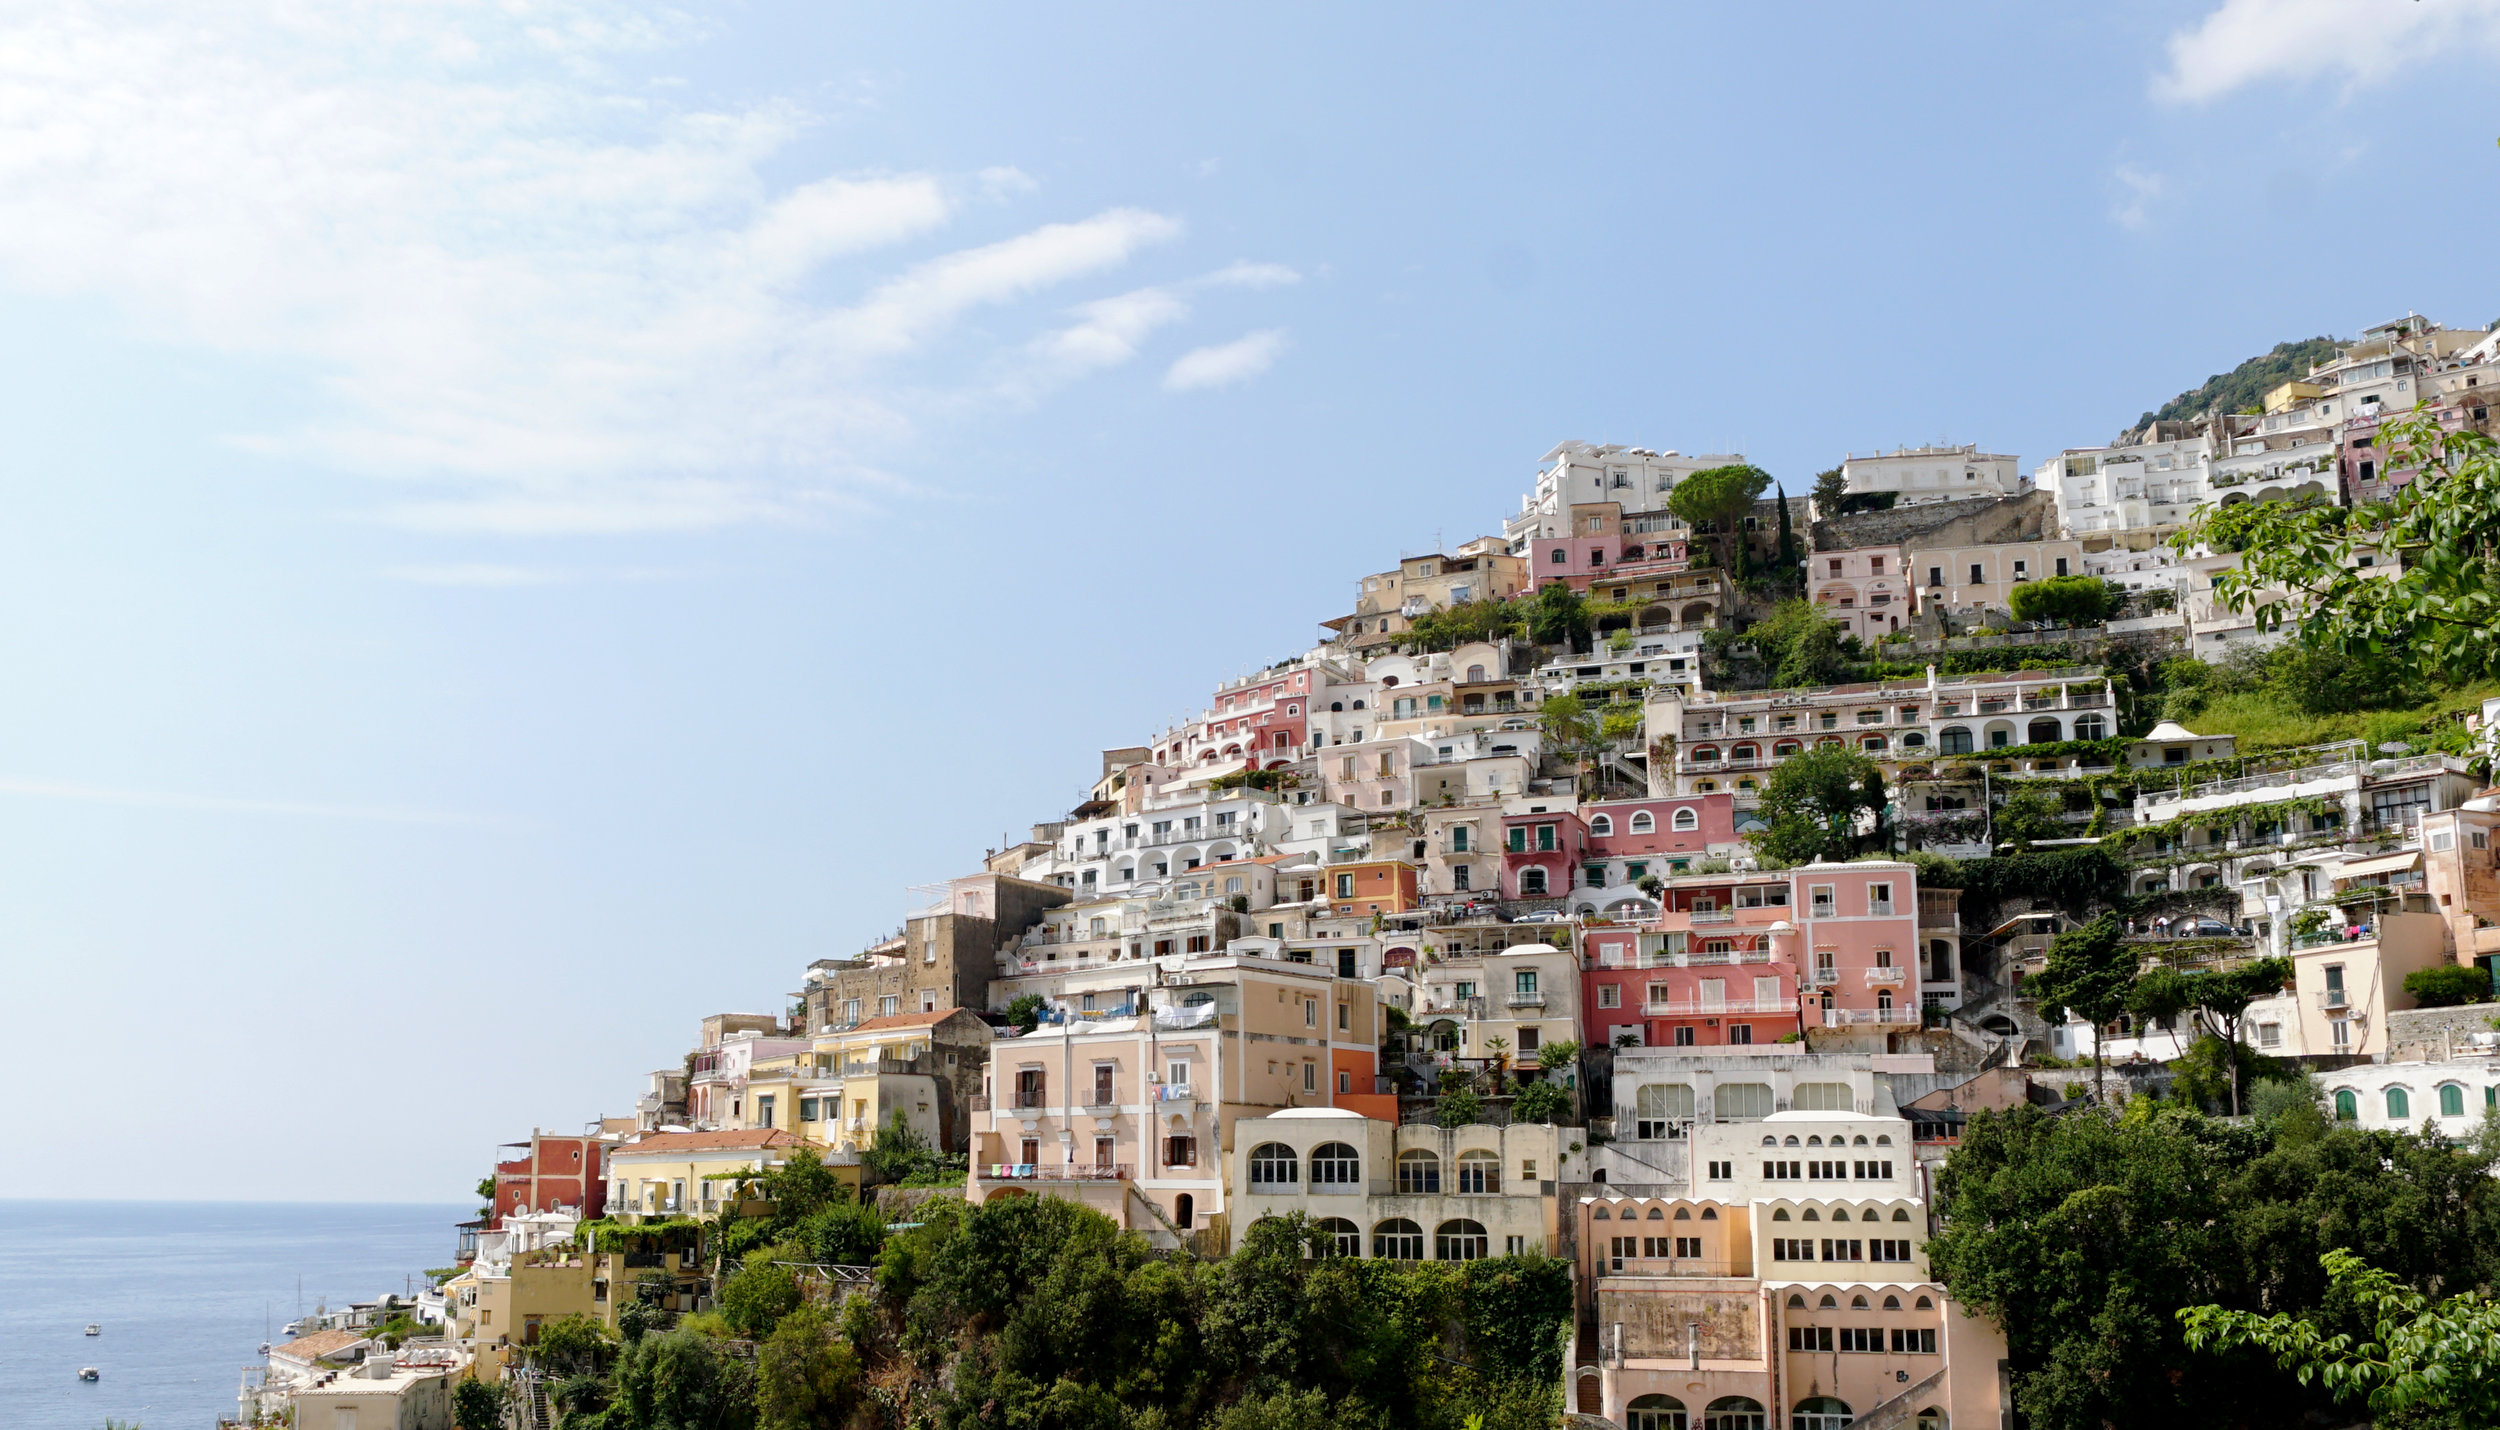 Colorful houses of Positano